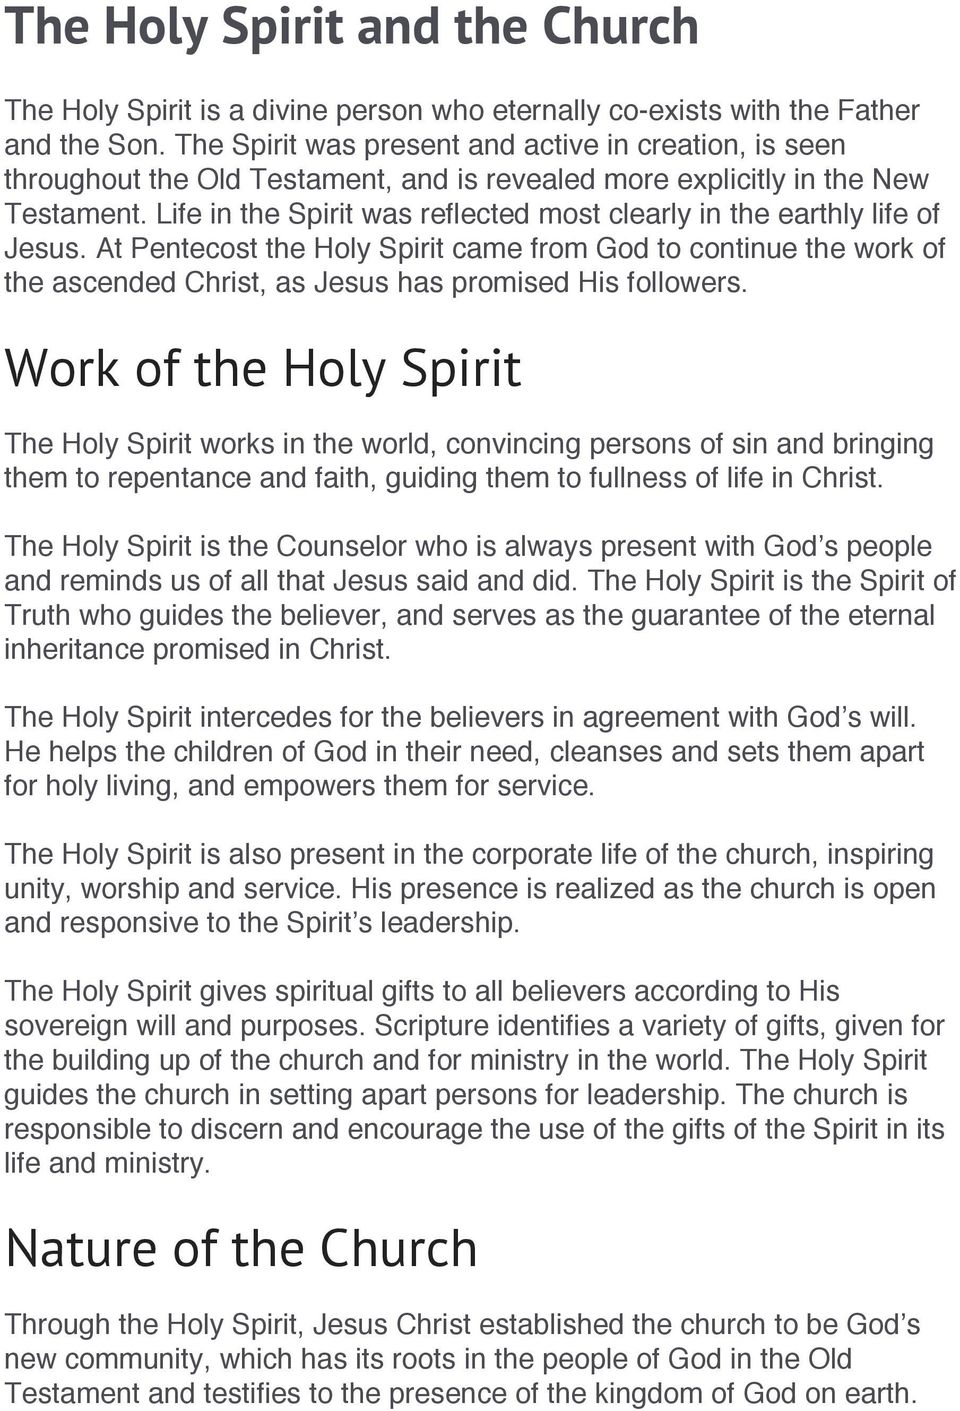 Life in the Spirit was reflected most clearly in the earthly life of Jesus. At Pentecost the Holy Spirit came from God to continue the work of the ascended Christ, as Jesus has promised His followers.